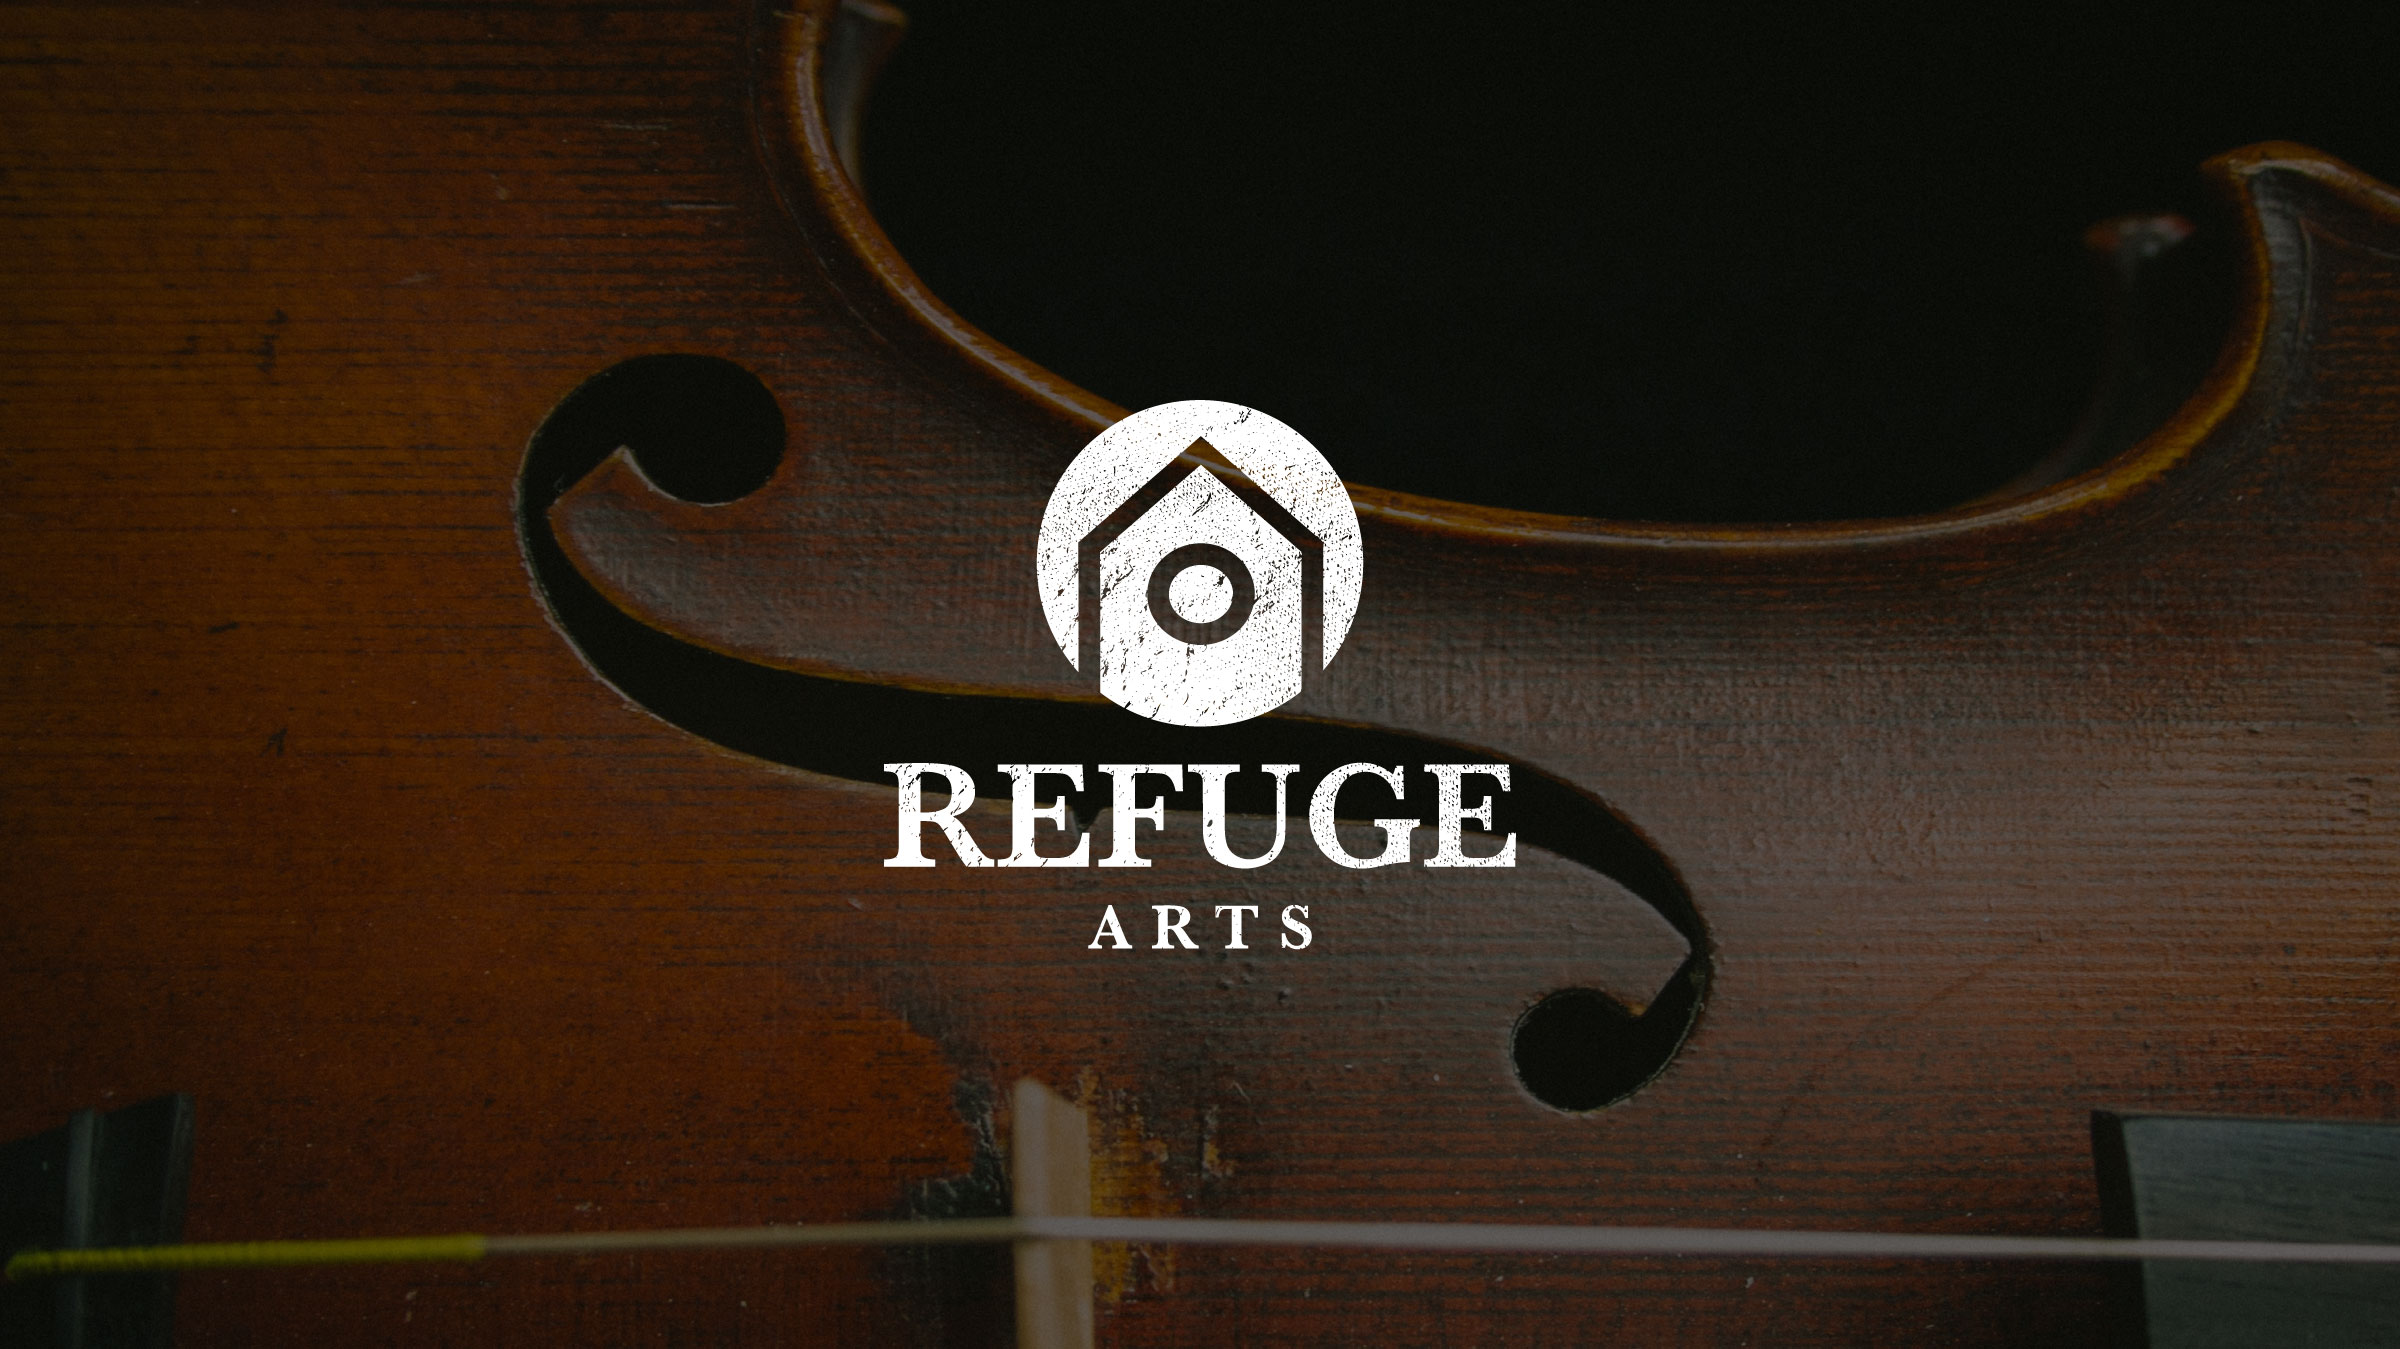 Refuge Arts Concept with Treehouse